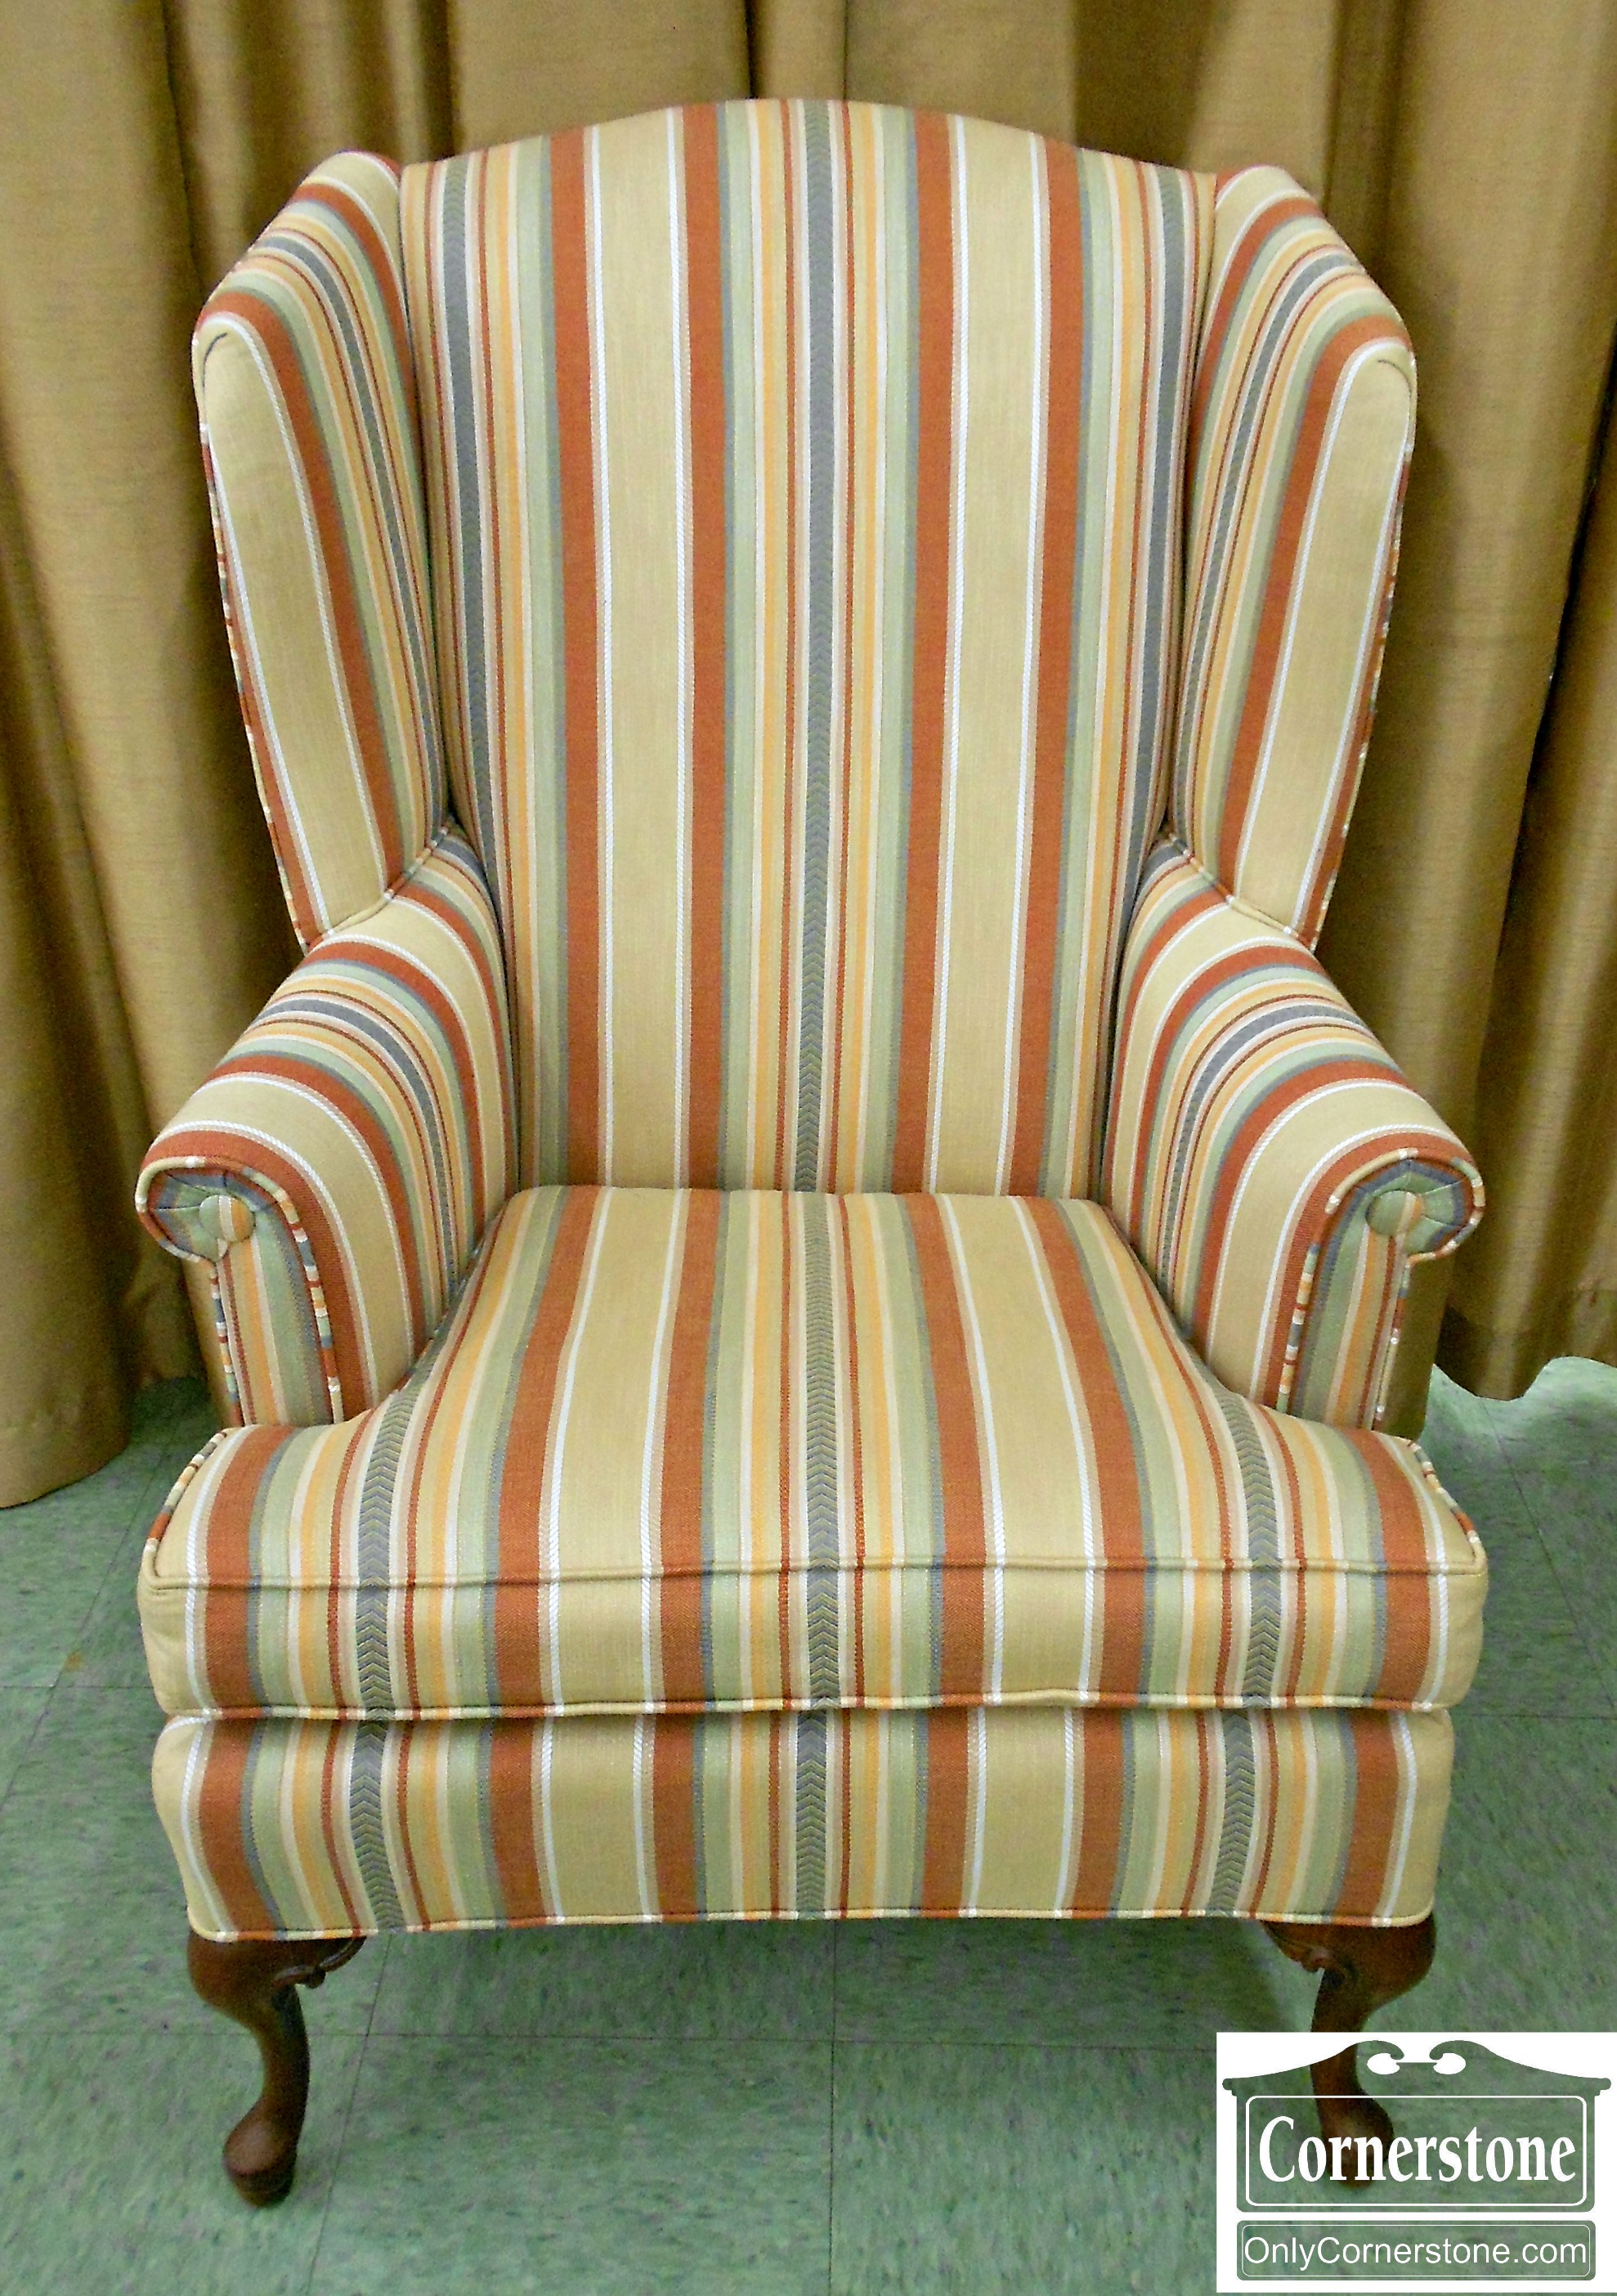 5965-69 Ashley Manor Striped Wingback Chair